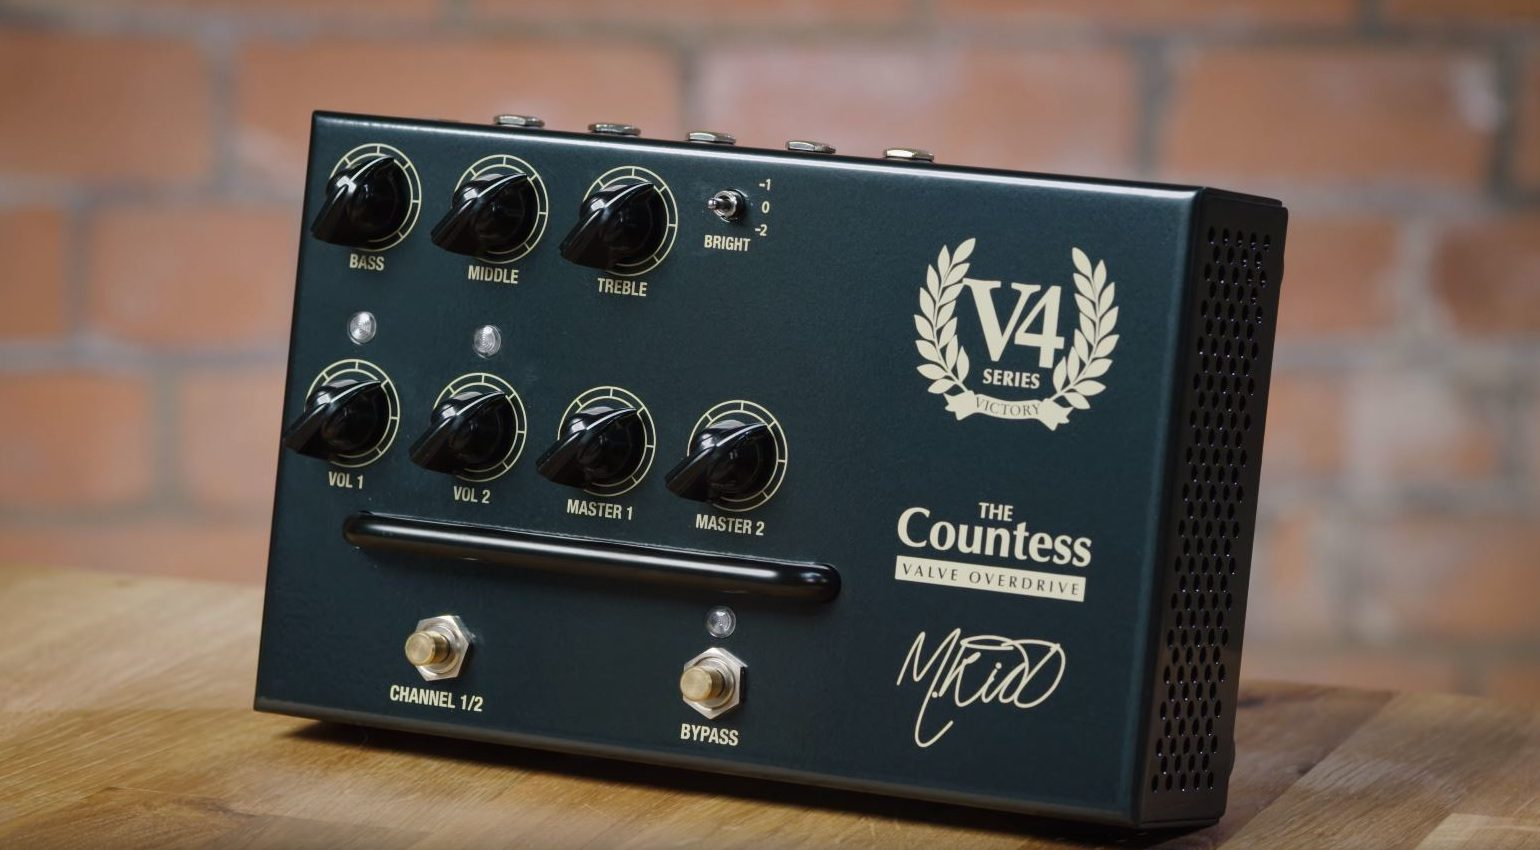 Victory V4 Preamp The Countess